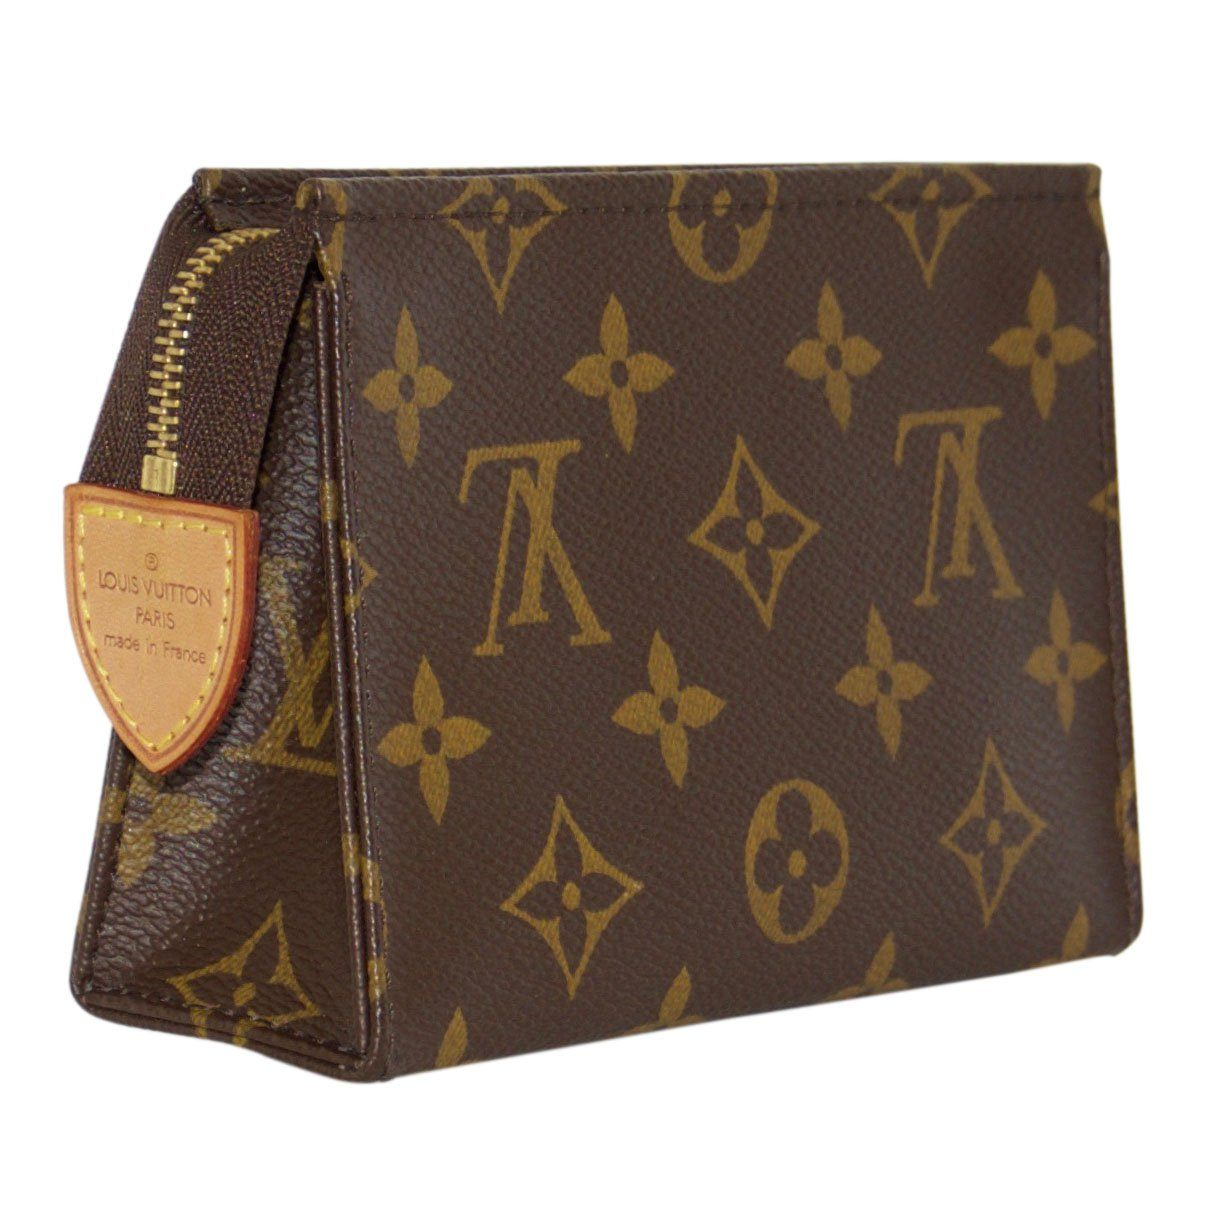 33baa7683b9d Louis Vuitton Monogram Toiletry Pouch 15 - Oliver Jewellery